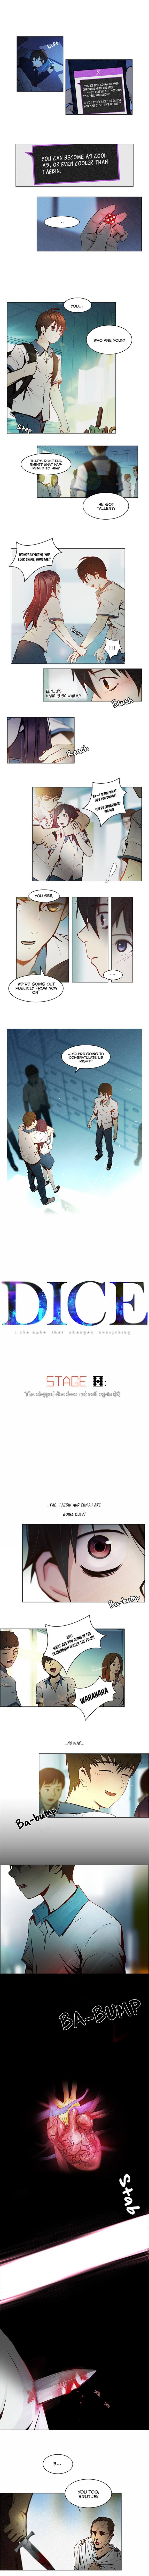 DICE: the cube that changes everything 7 Page 1